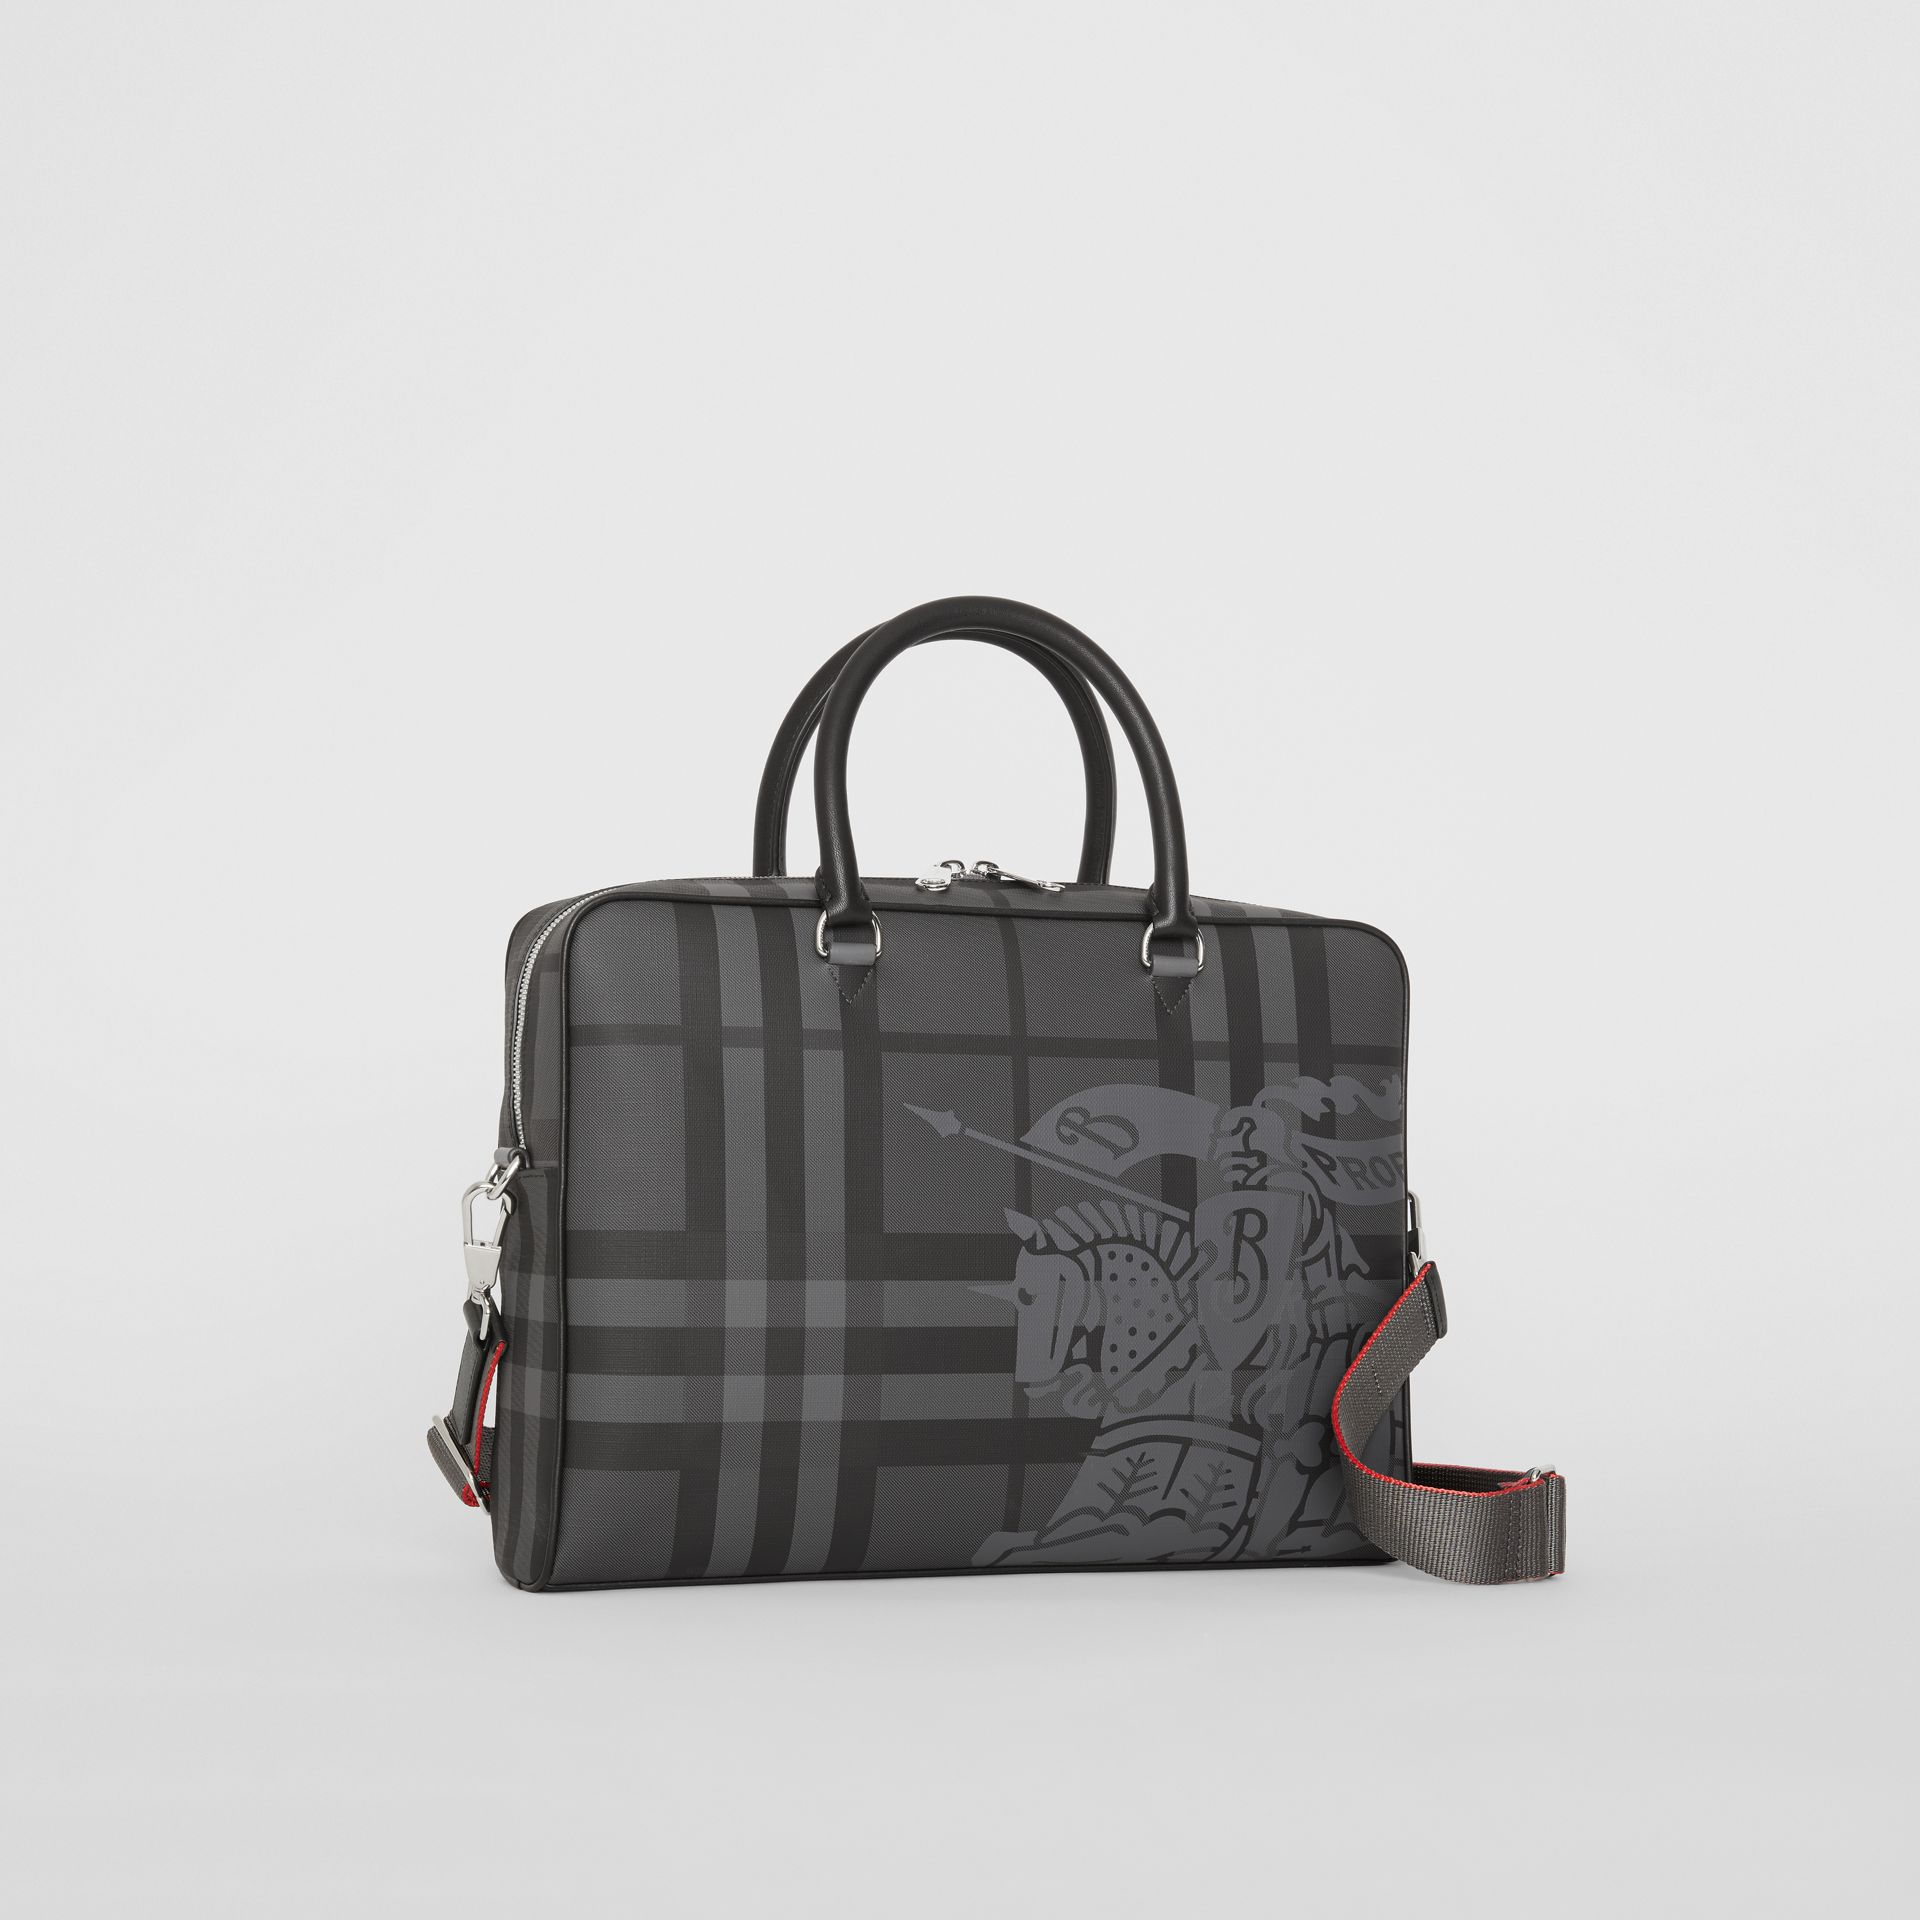 EKD London Check and Leather Briefcase in Charcoal/black - Men | Burberry Australia - gallery image 6